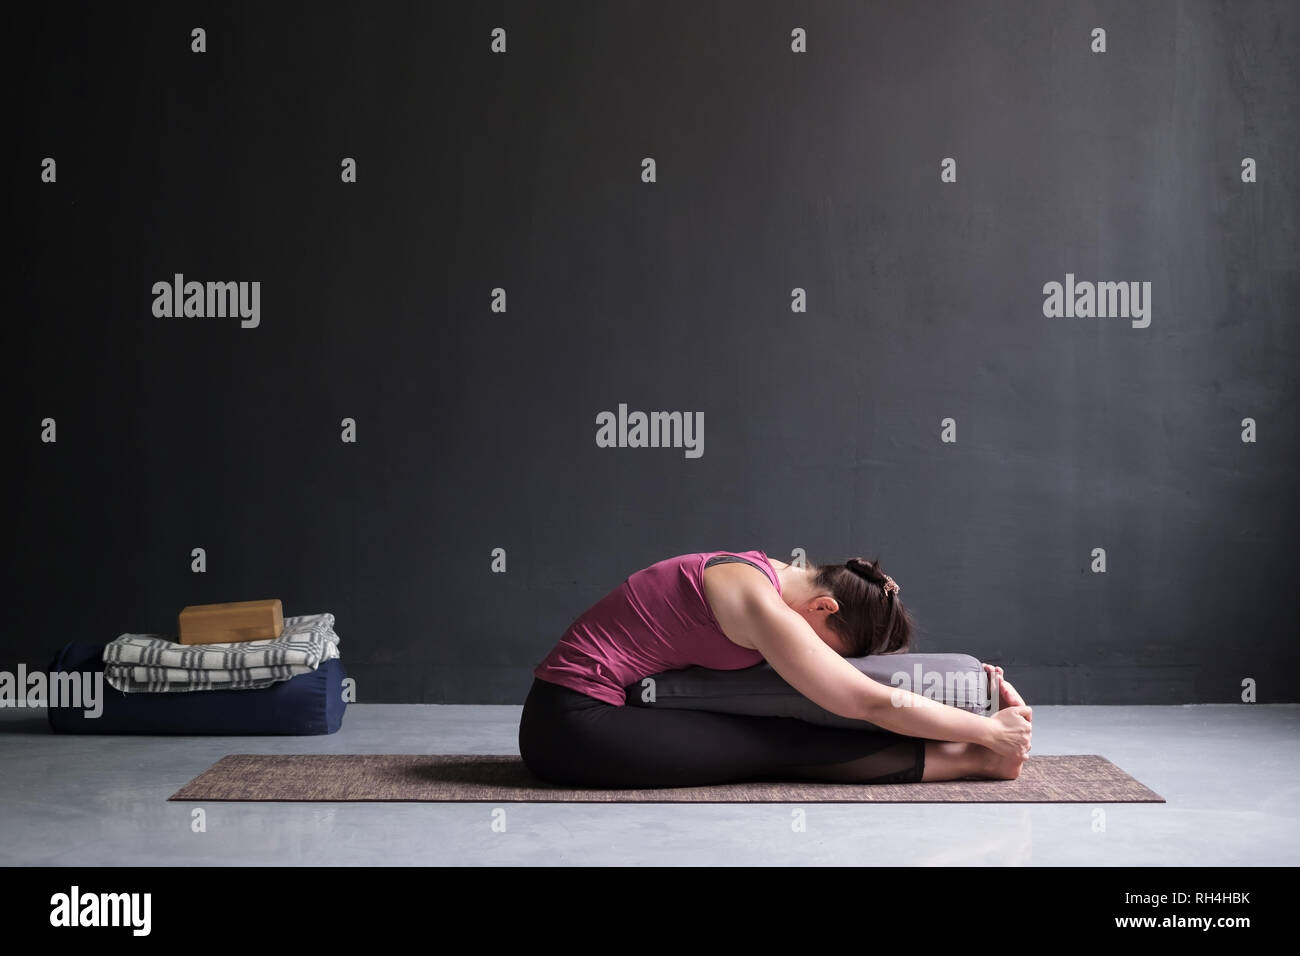 woman practicing yoga, doing Seated forward bend pose, using bolster. - Stock Image